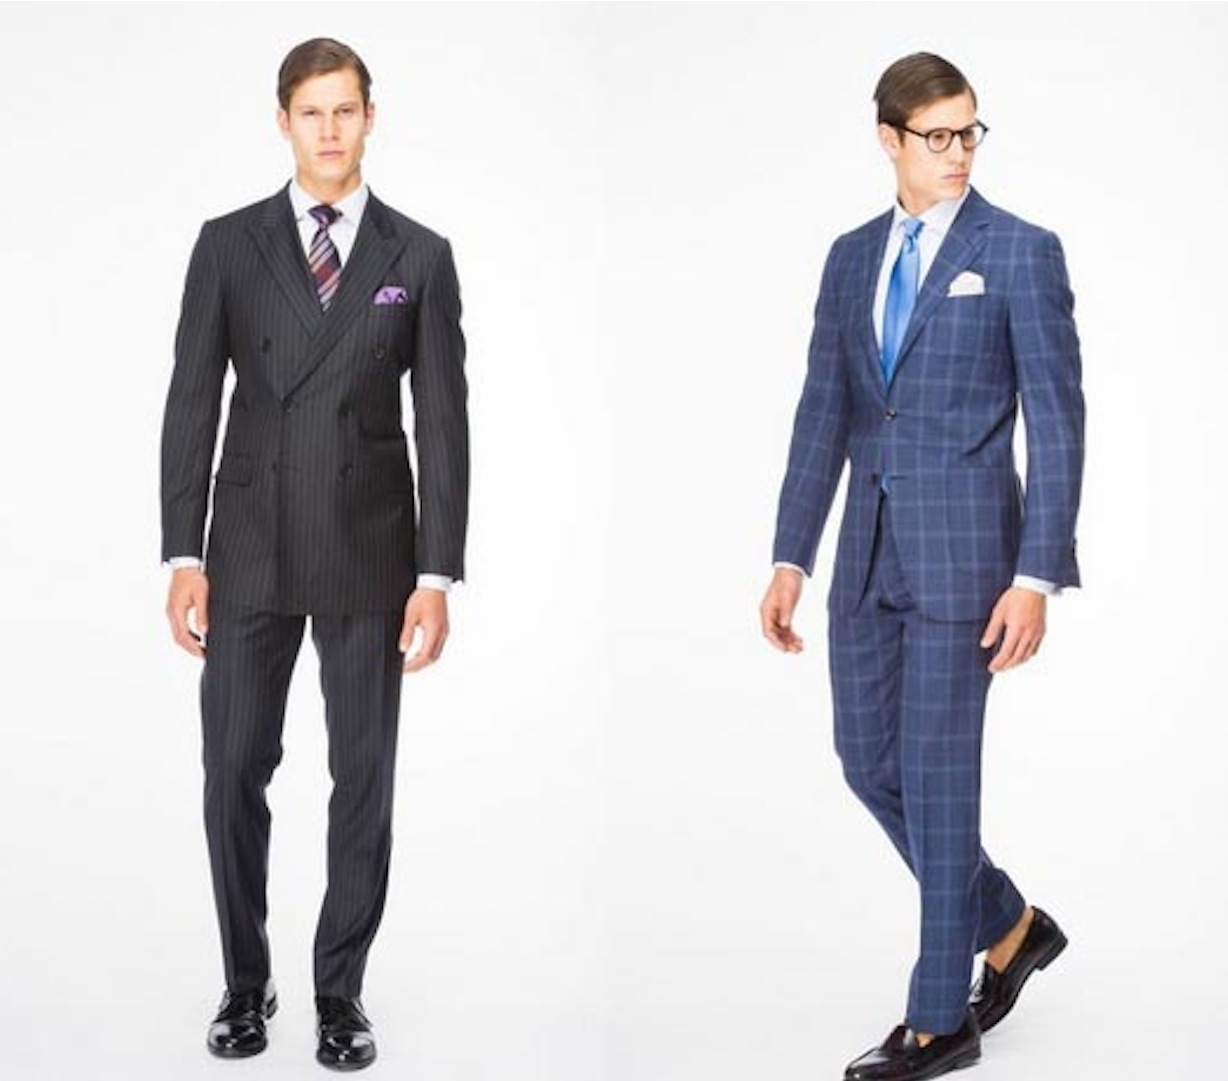 Knot Standard Sets The Standard For Men's Tailored Suits - SMF